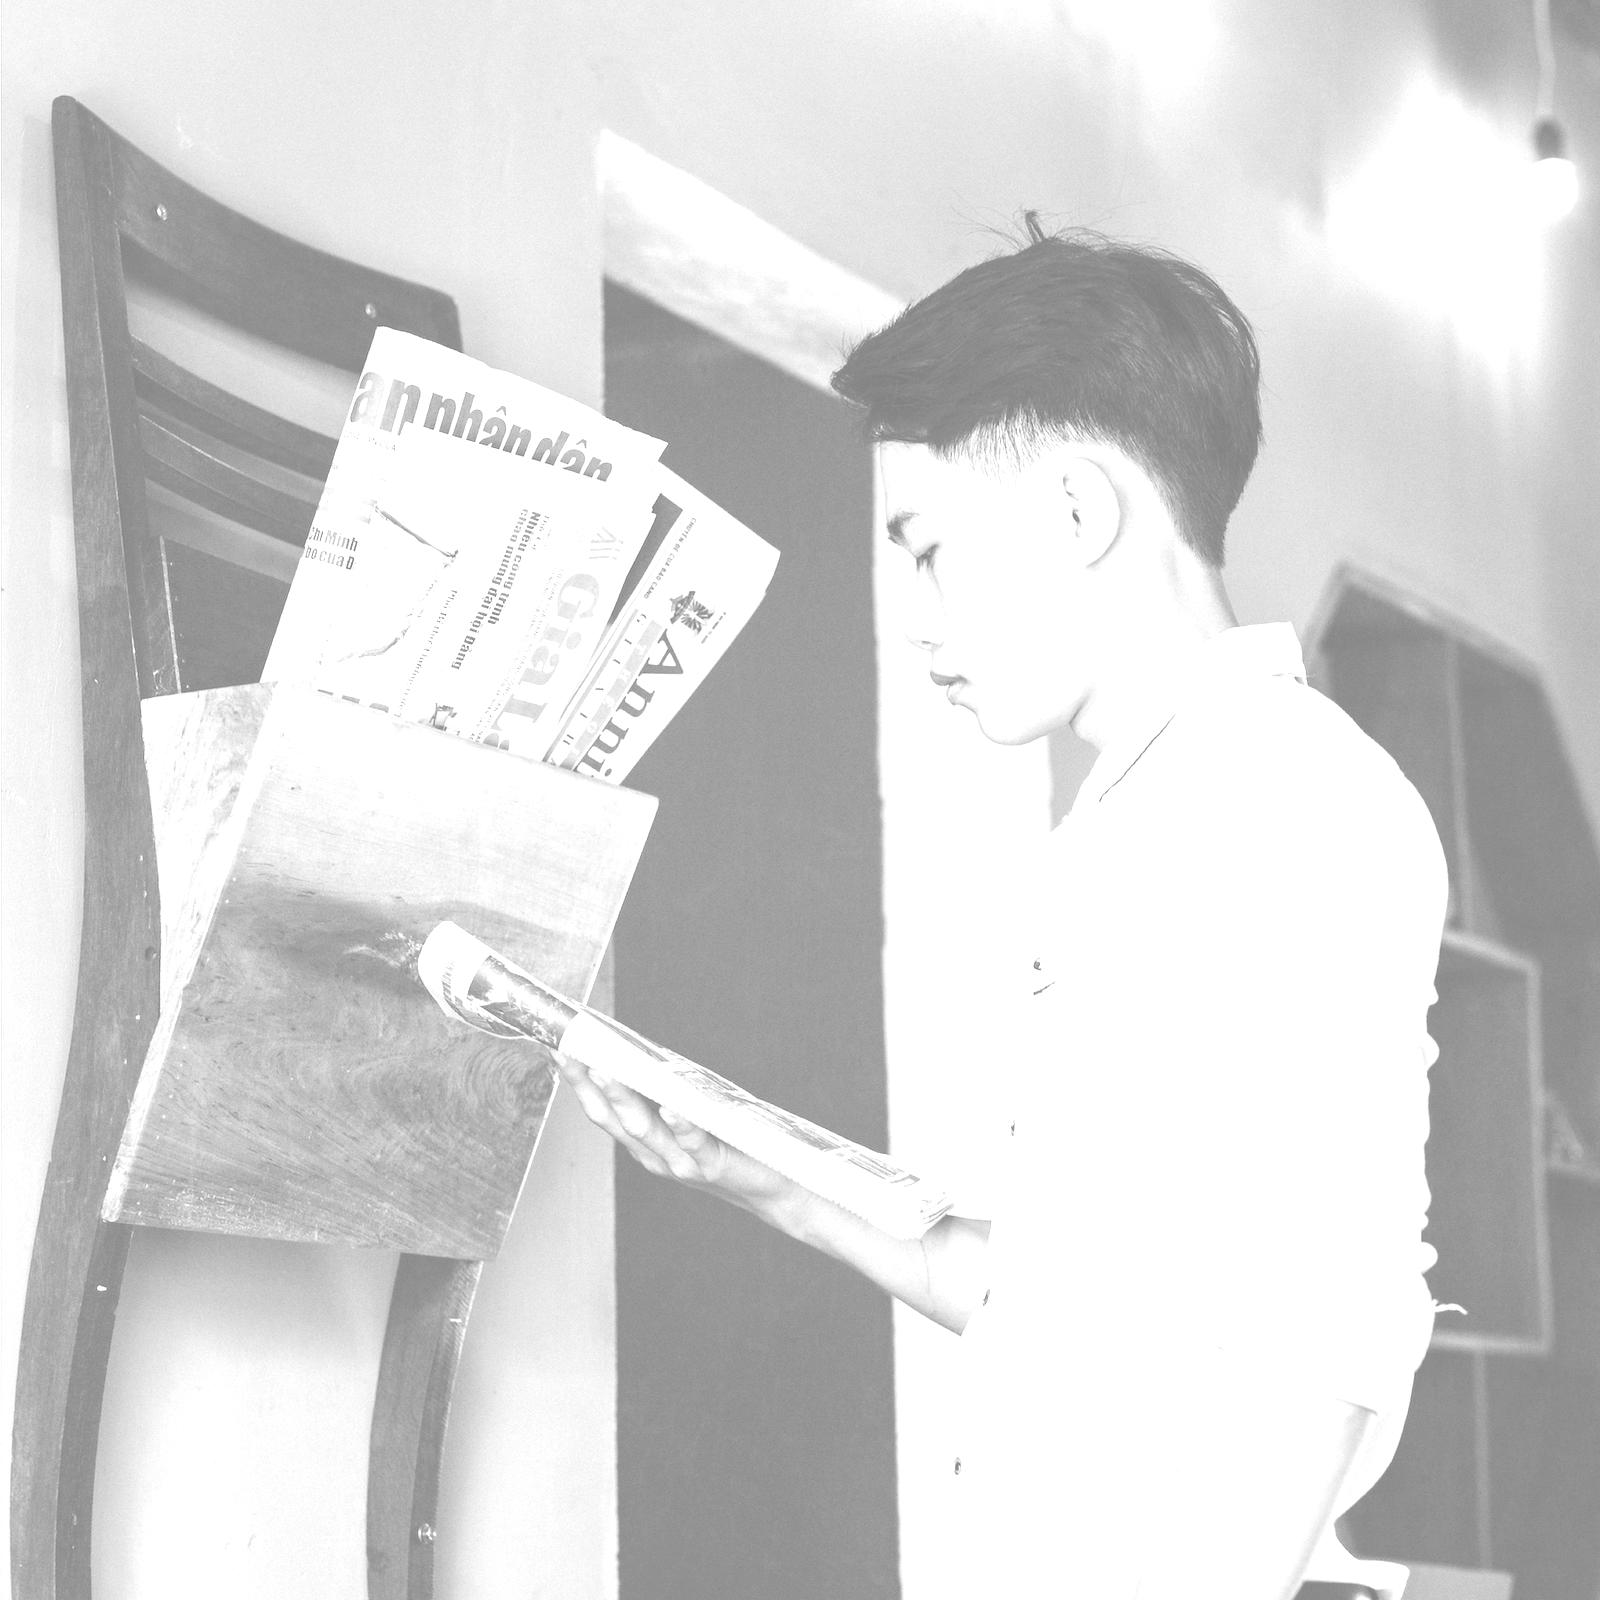 Young man reading newspaper.